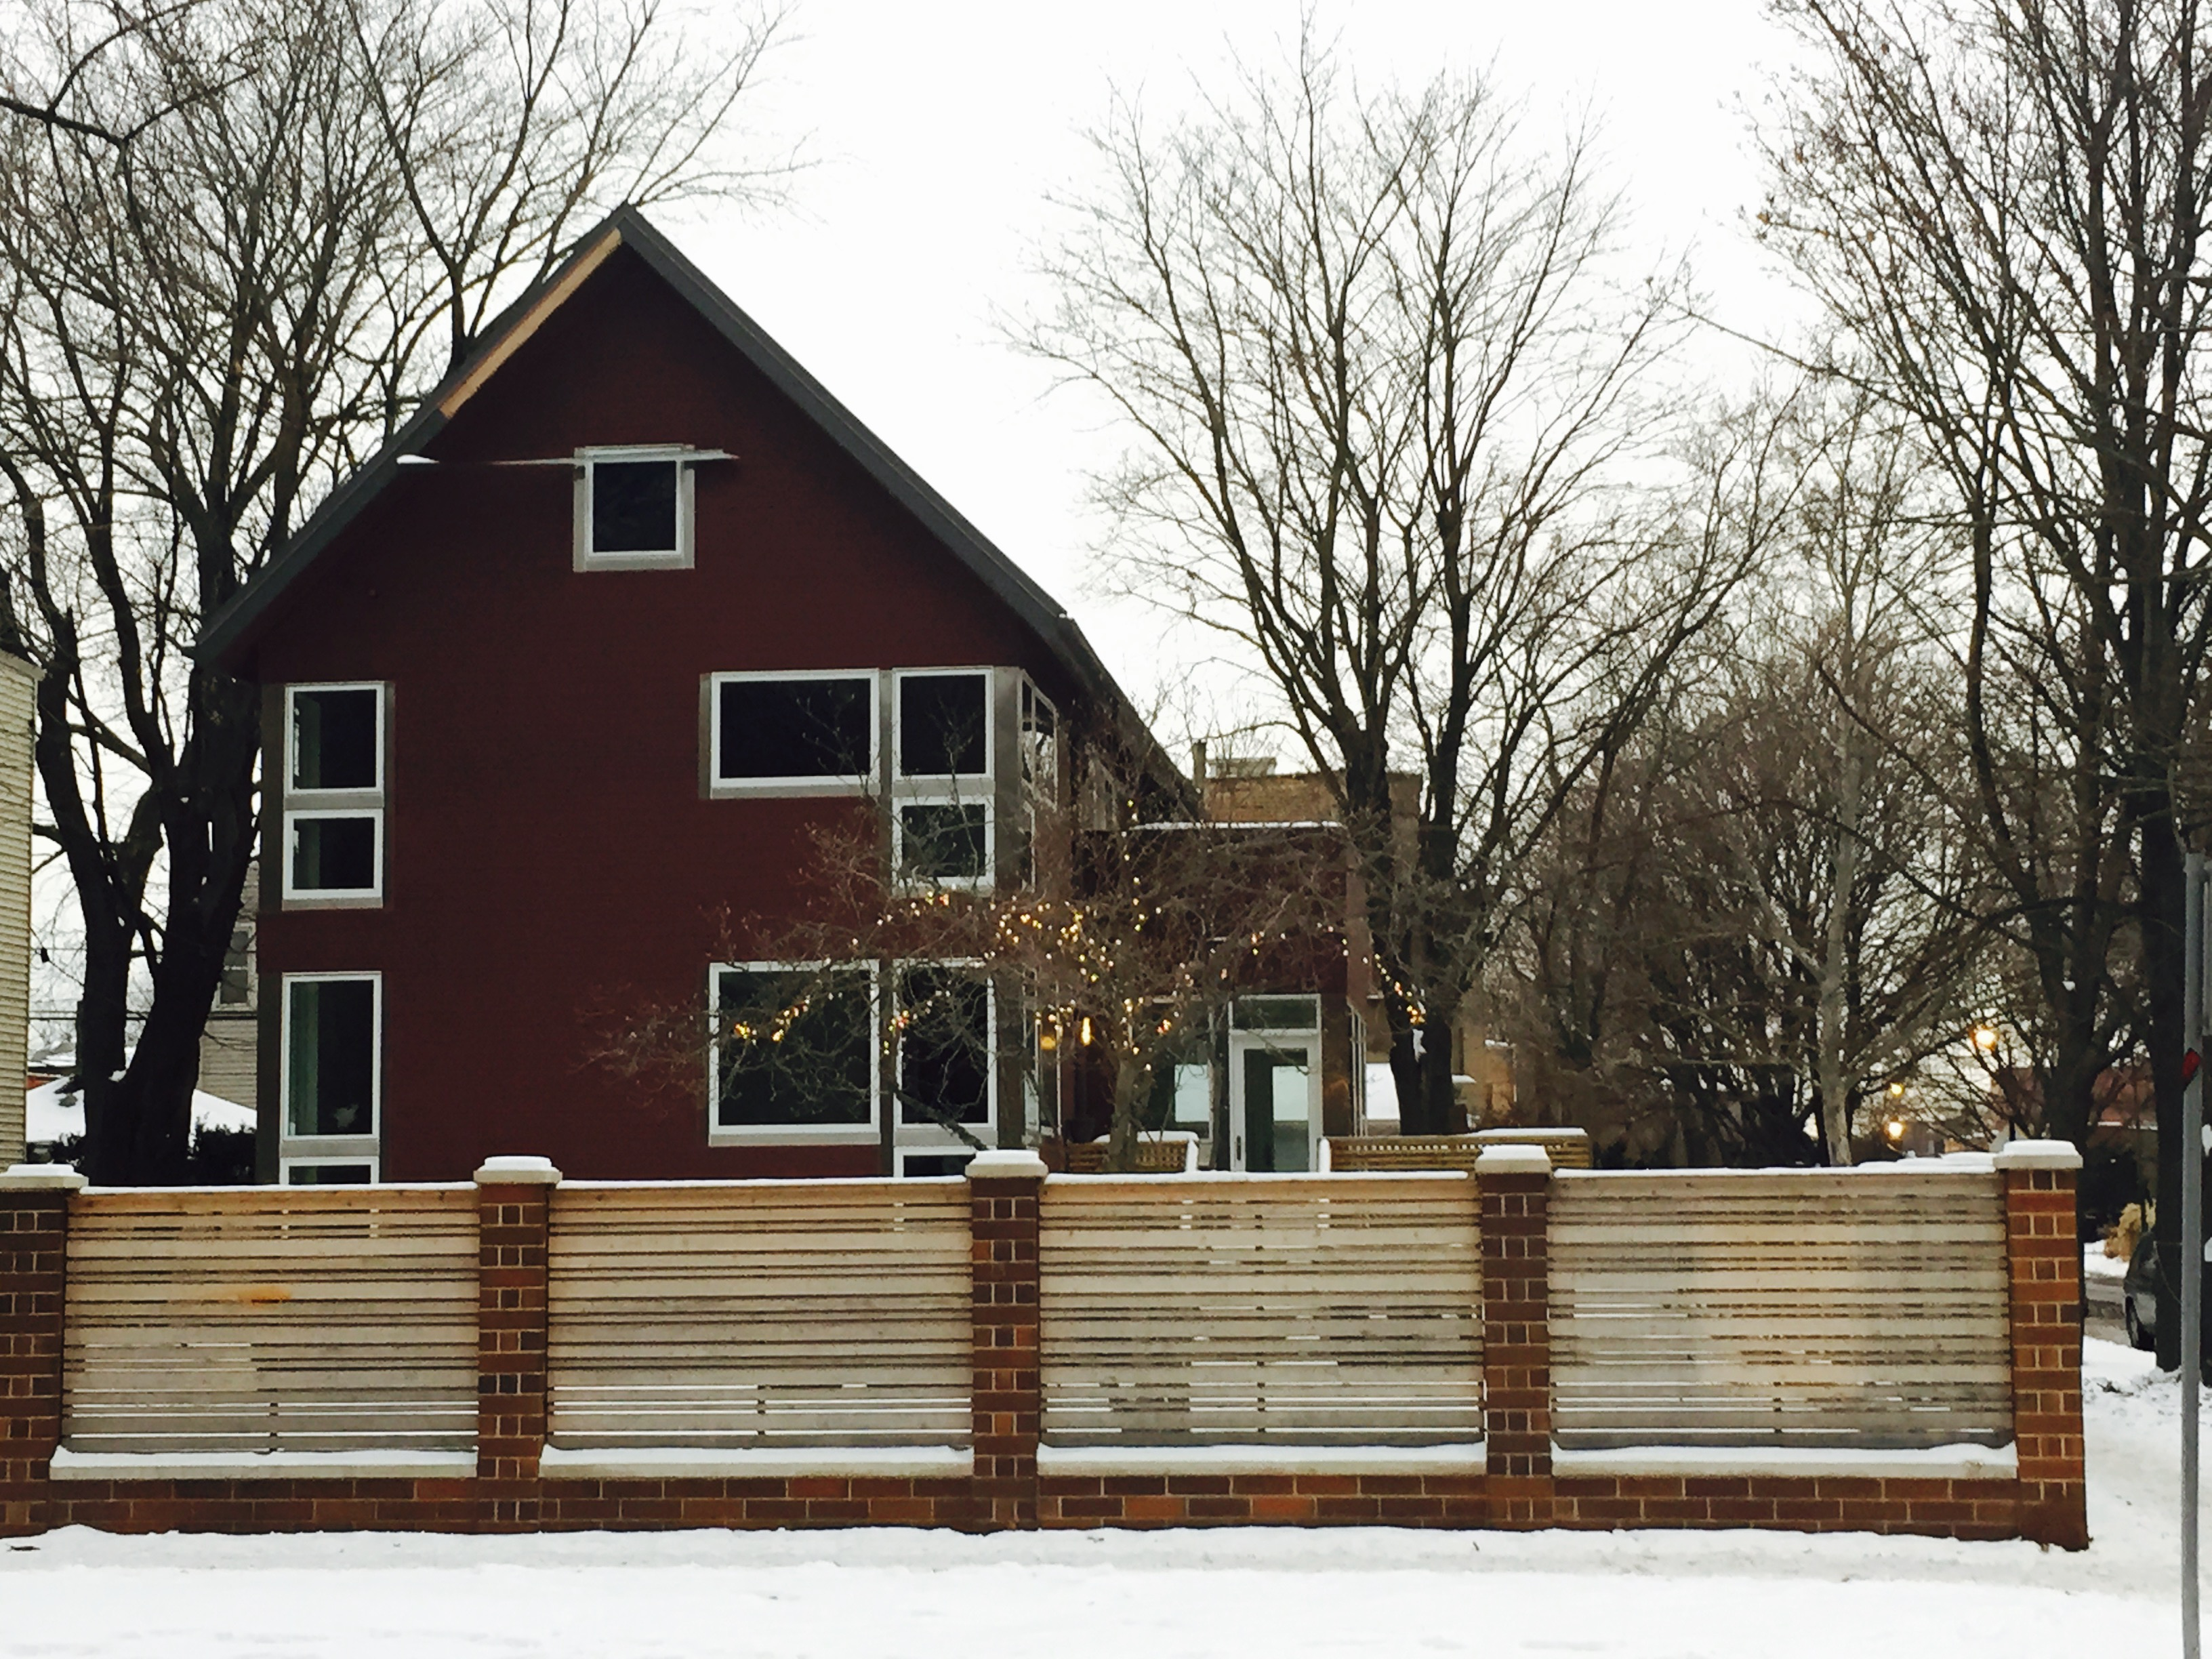 Greenest House in Andersonville Could Be Demolished